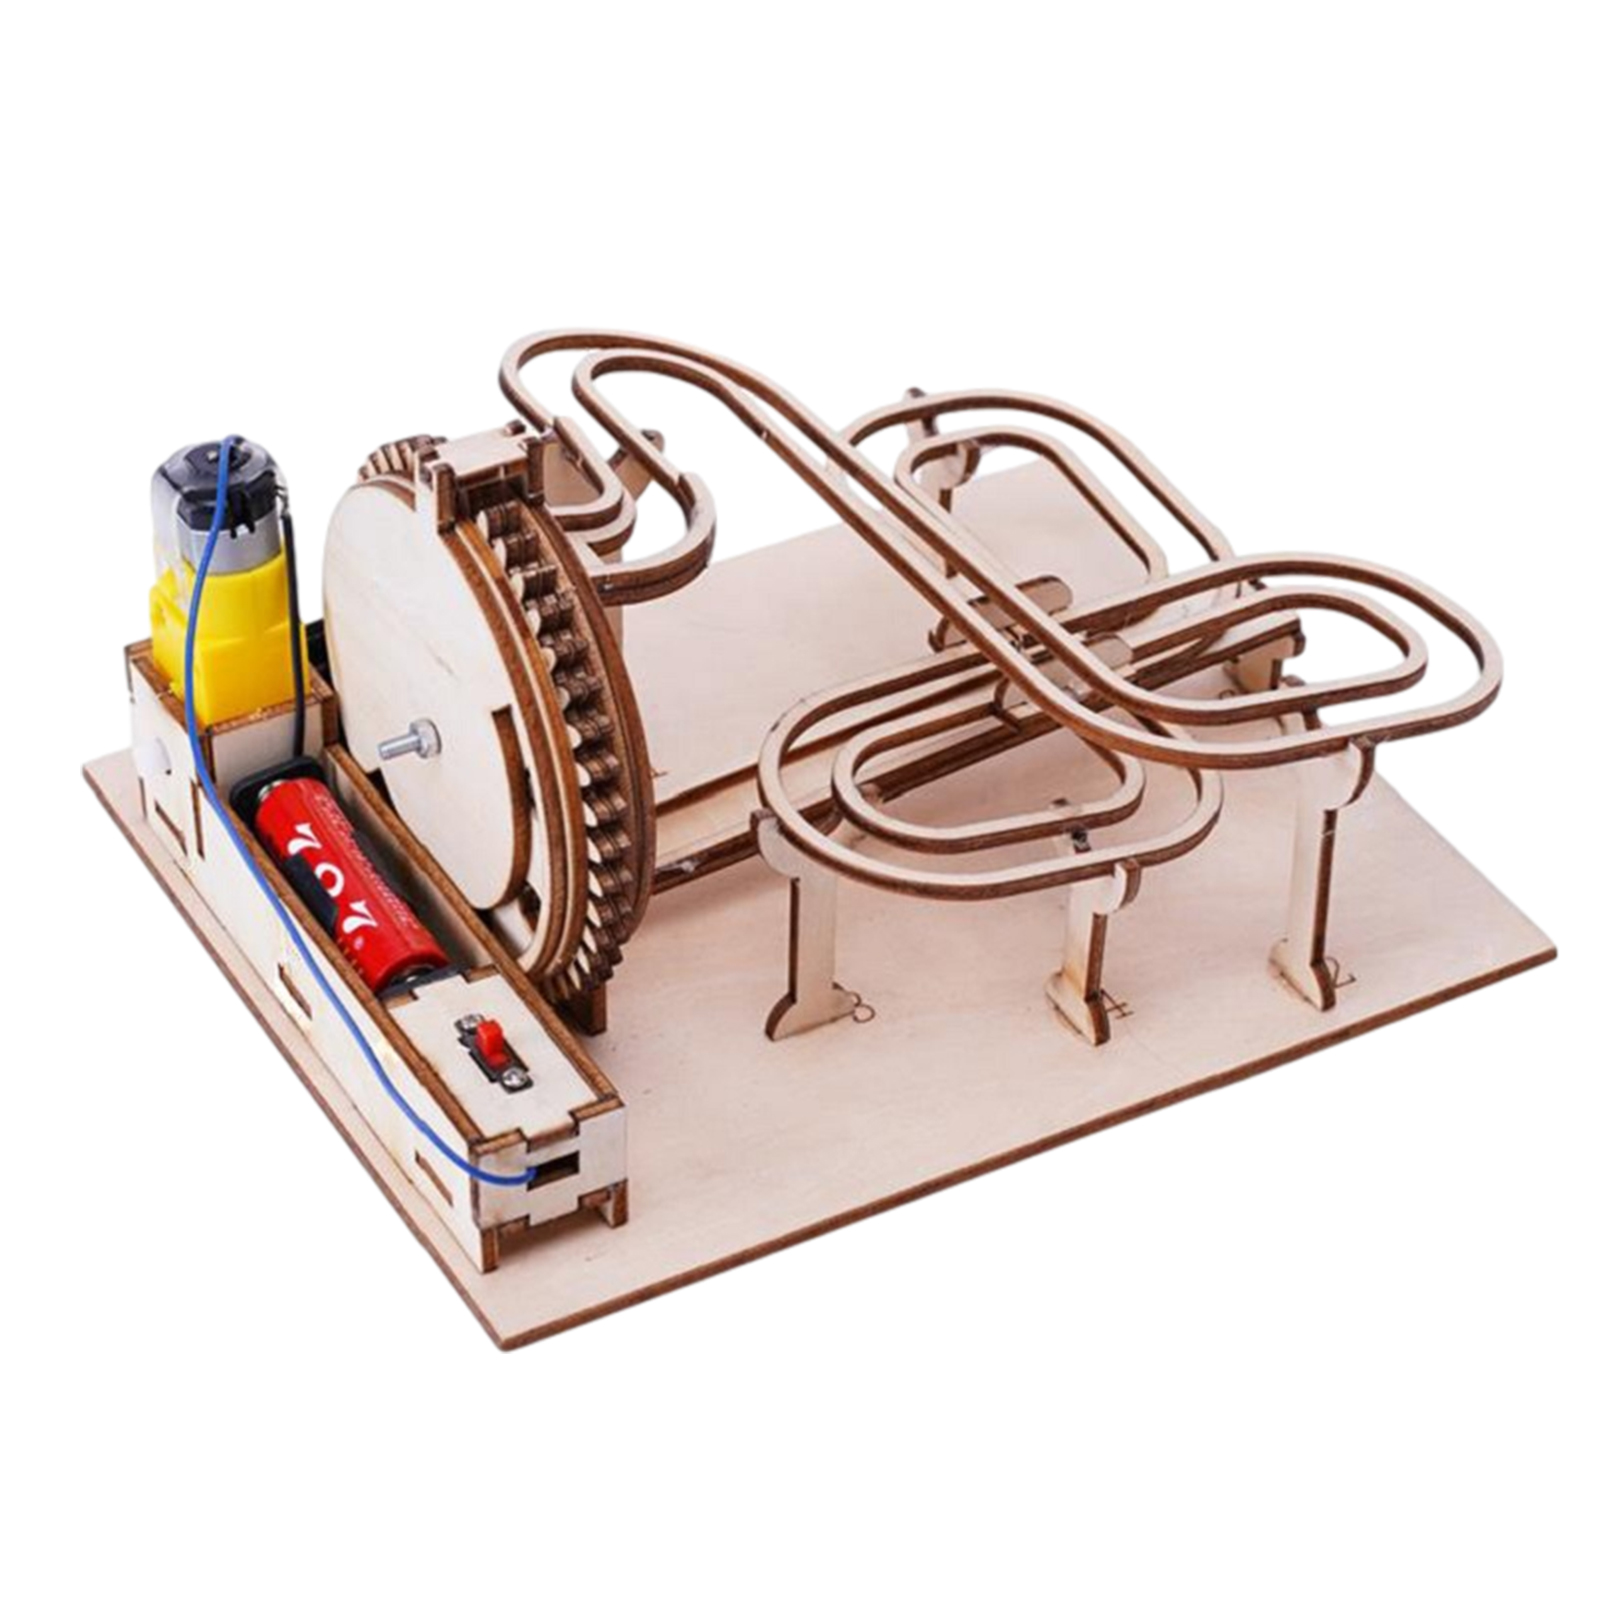 Science Experiment Educational Kit 3D Wooden Marble Run DIY Assemble Mechanical Gear Engineering Model Puzzles For Kids Adults